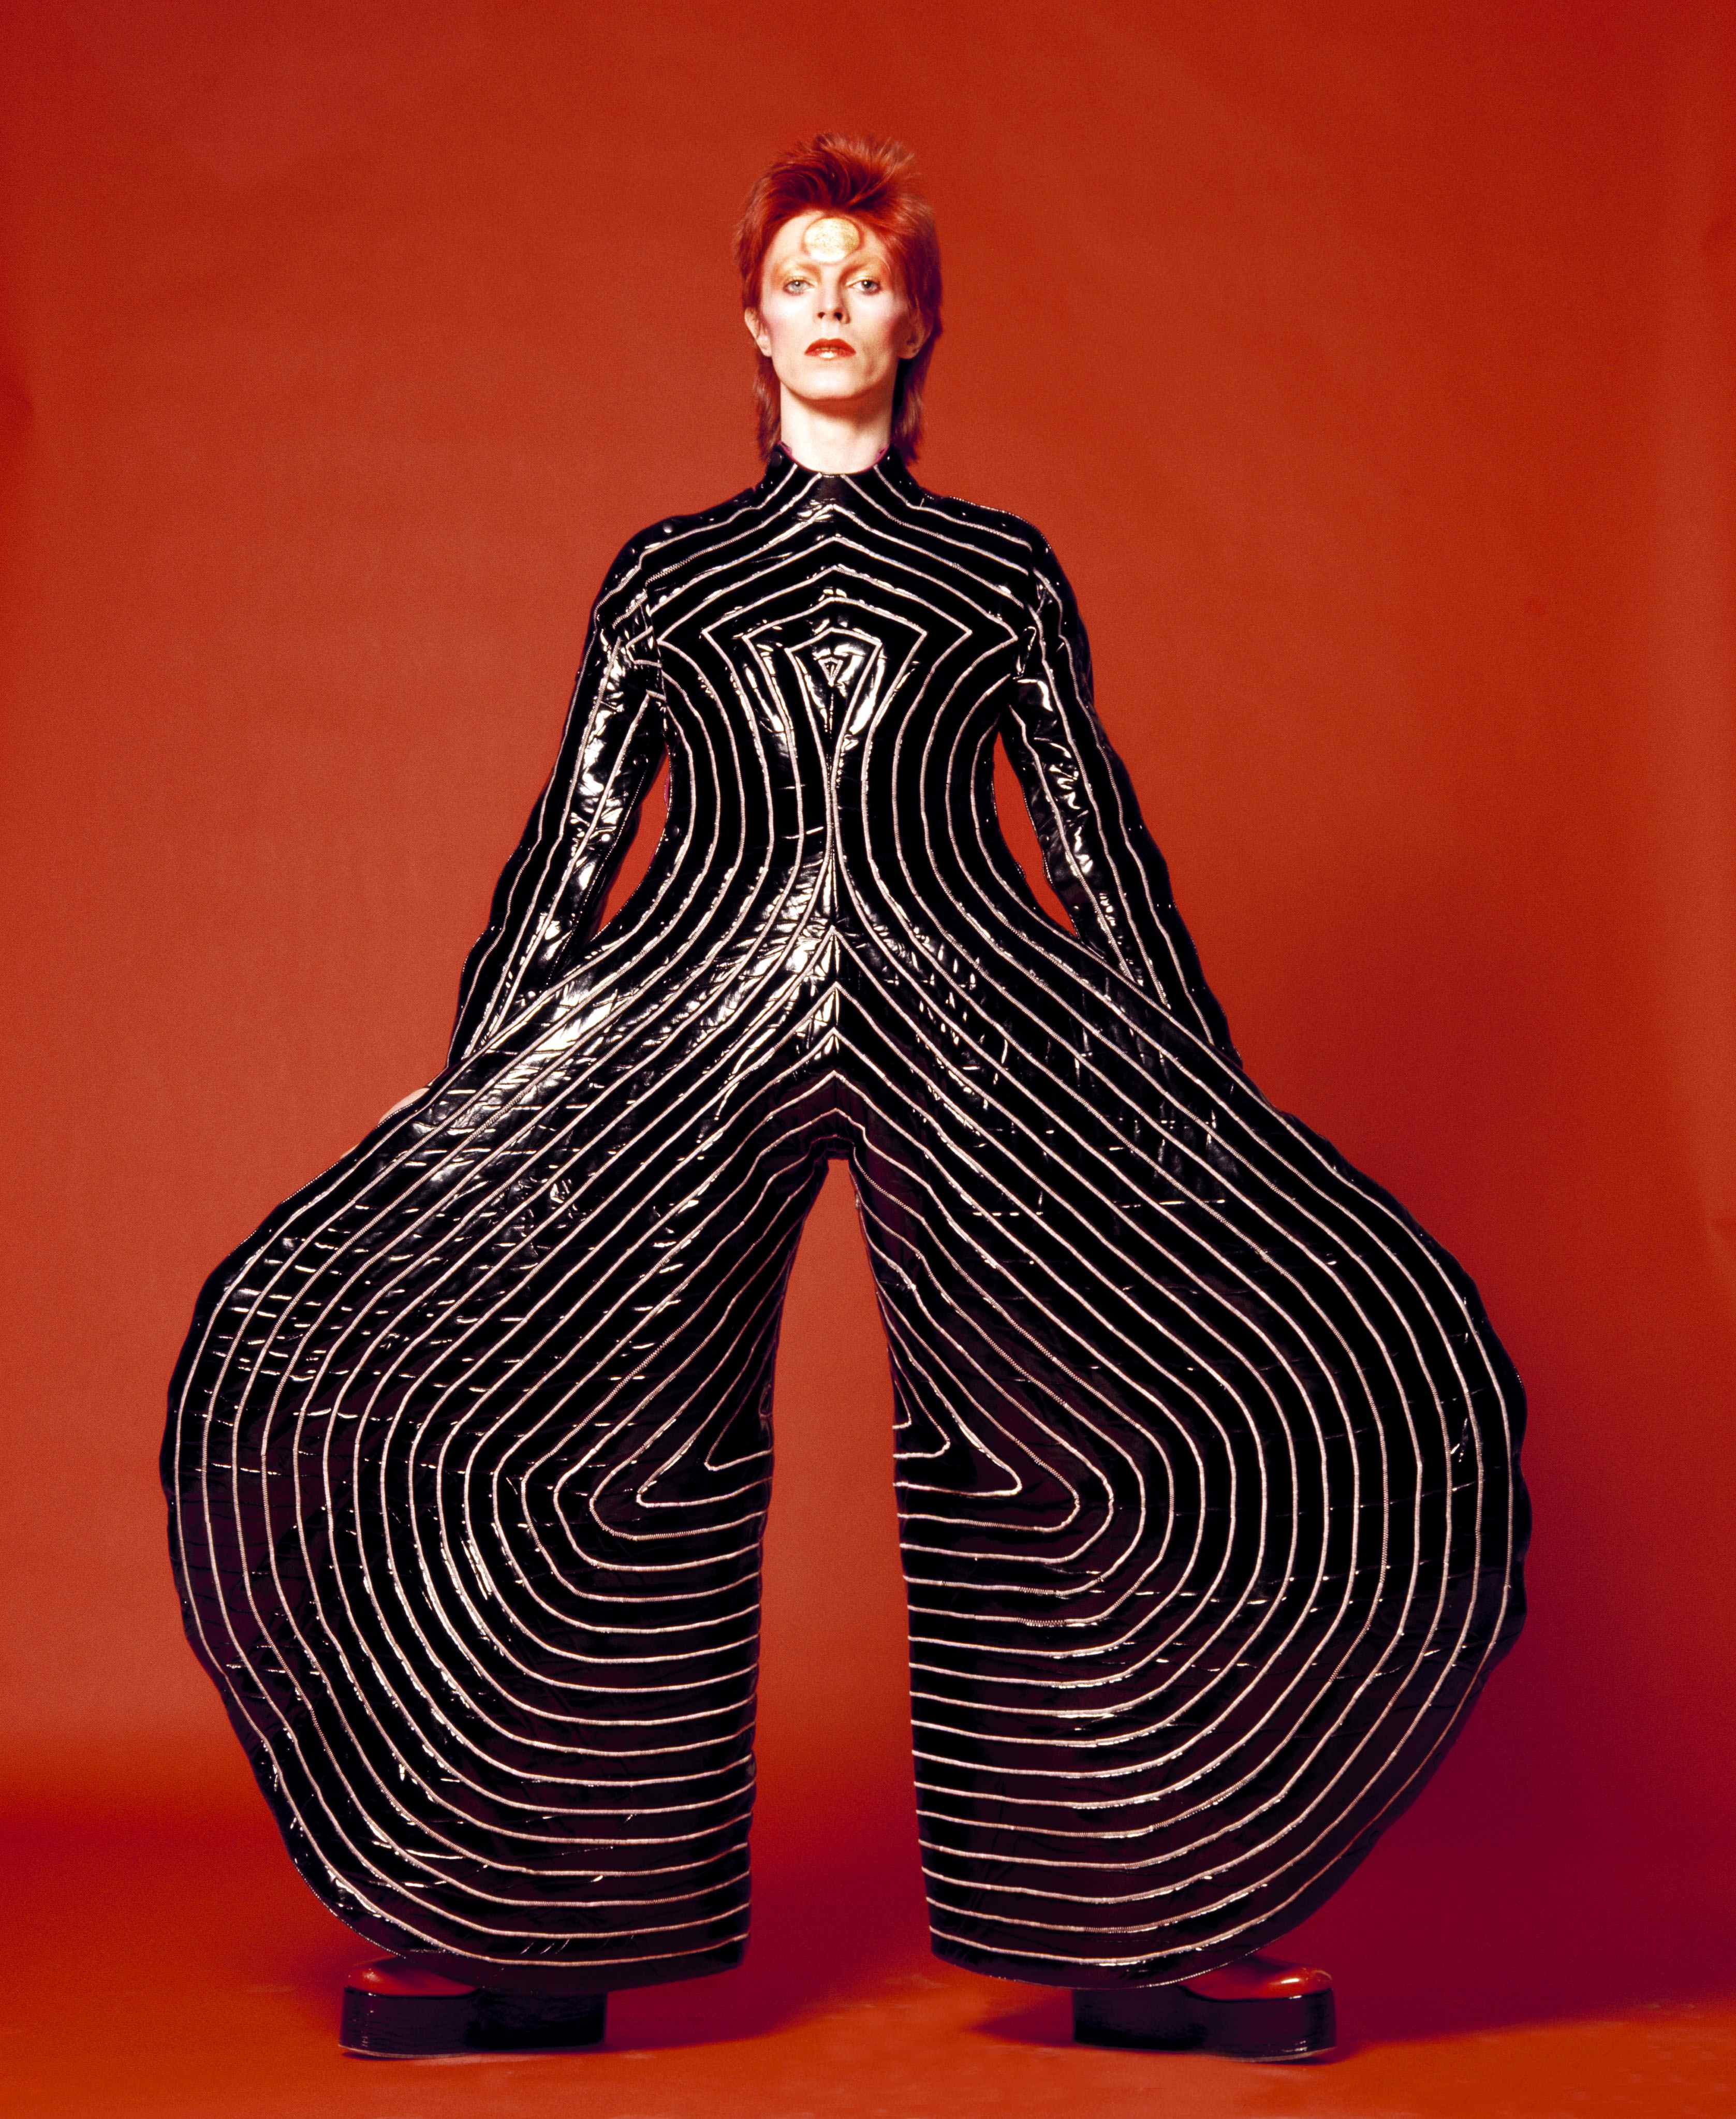 """Striped bodysuit for Aladdin Sane tour 1973 Design by Kansai Yamamoto Photograph by Masayoshi Sukita  Sukita The David Bowie Arc """"Bowie Himself Is Unlikely To Last Long As A Cult"""""""